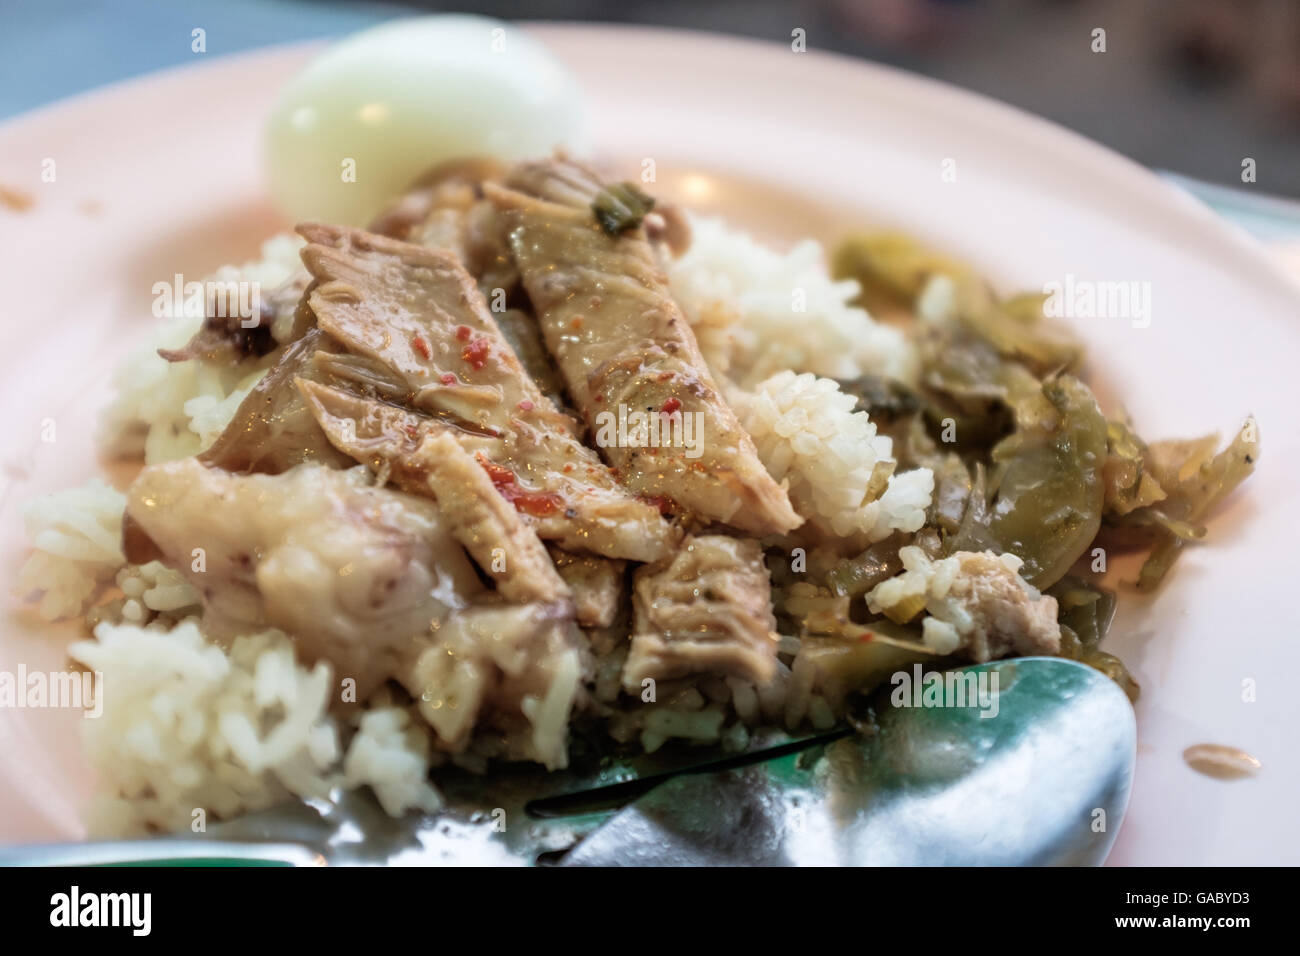 Slow cooked pork hock on a bed of rice with hard boiled egg and preserved veg,street food,Chiang Mai,northern Thai - Stock Image